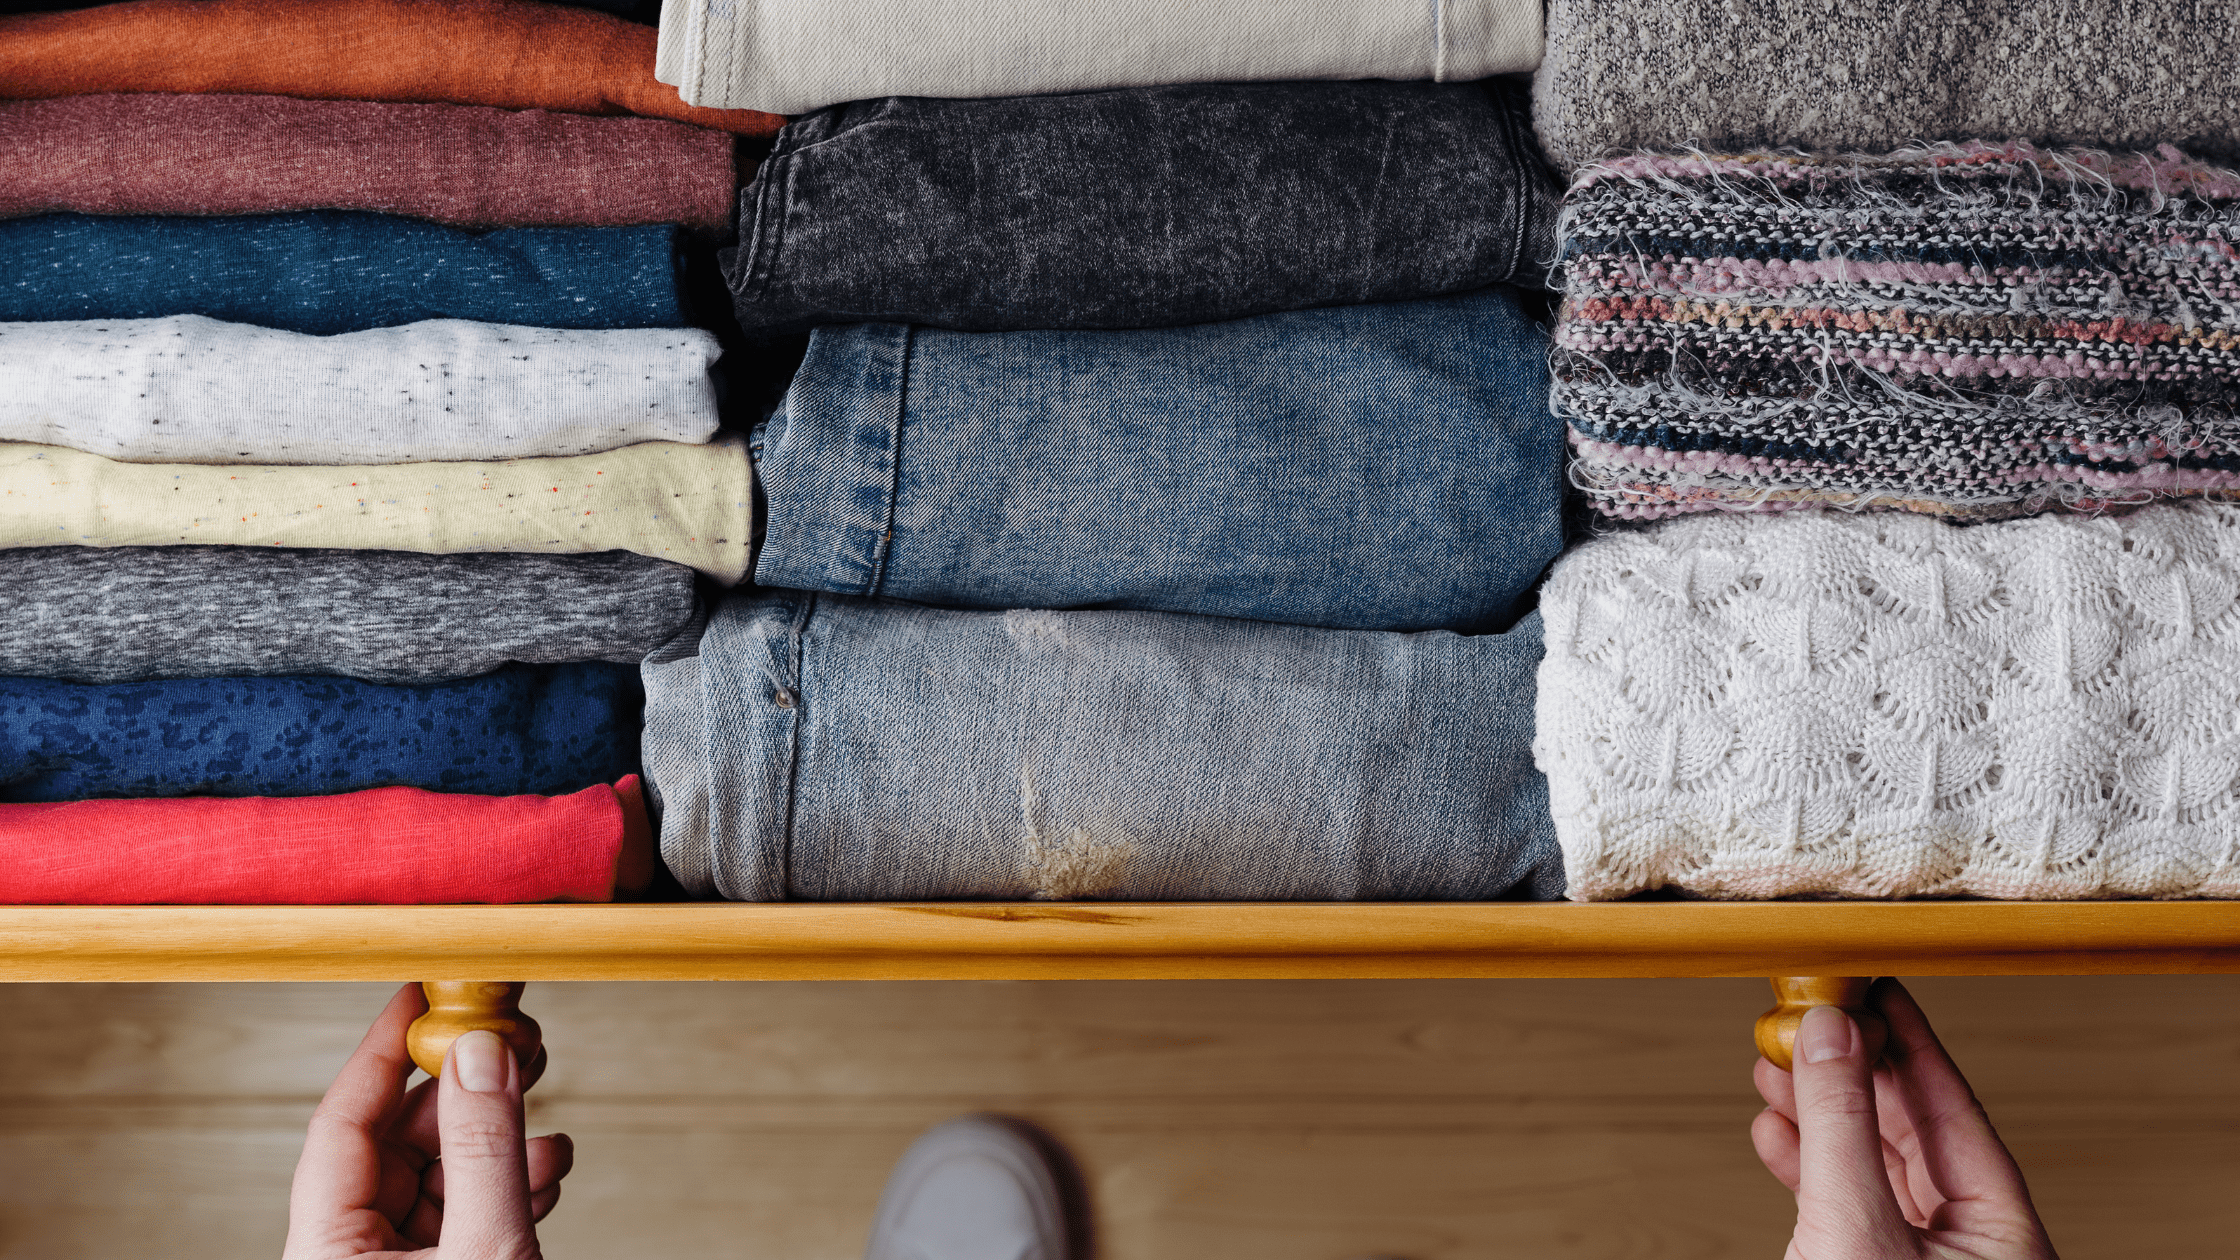 Tidying Up with Marie Kondo on Netflix Review